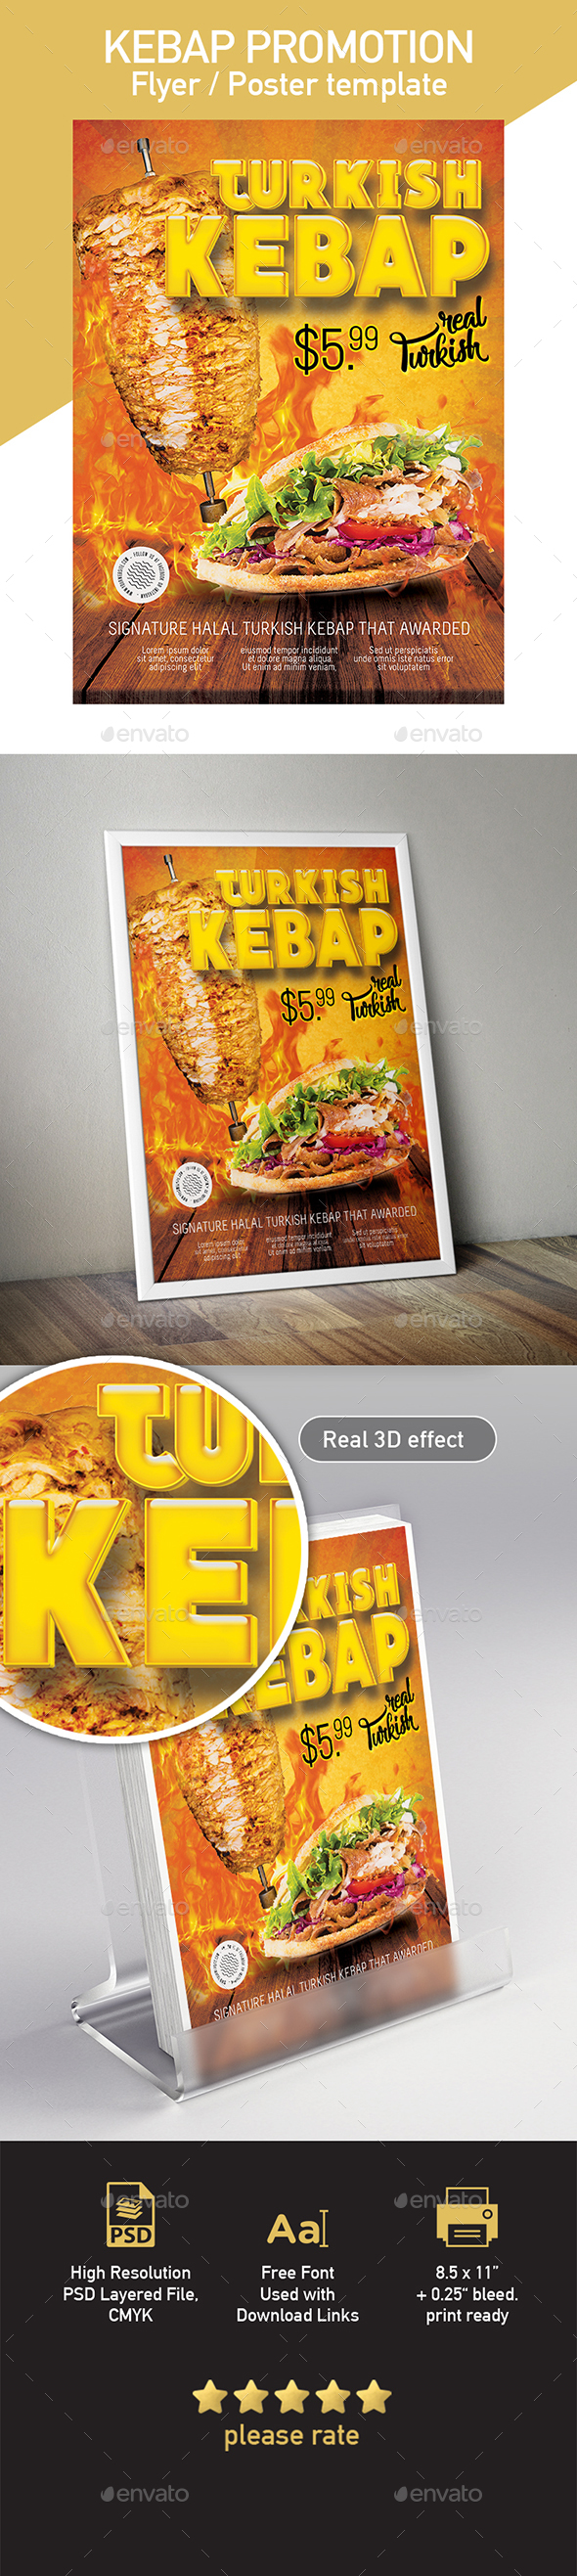 Turkish Kebap Flyer / Poster Template - Flyers Print Templates